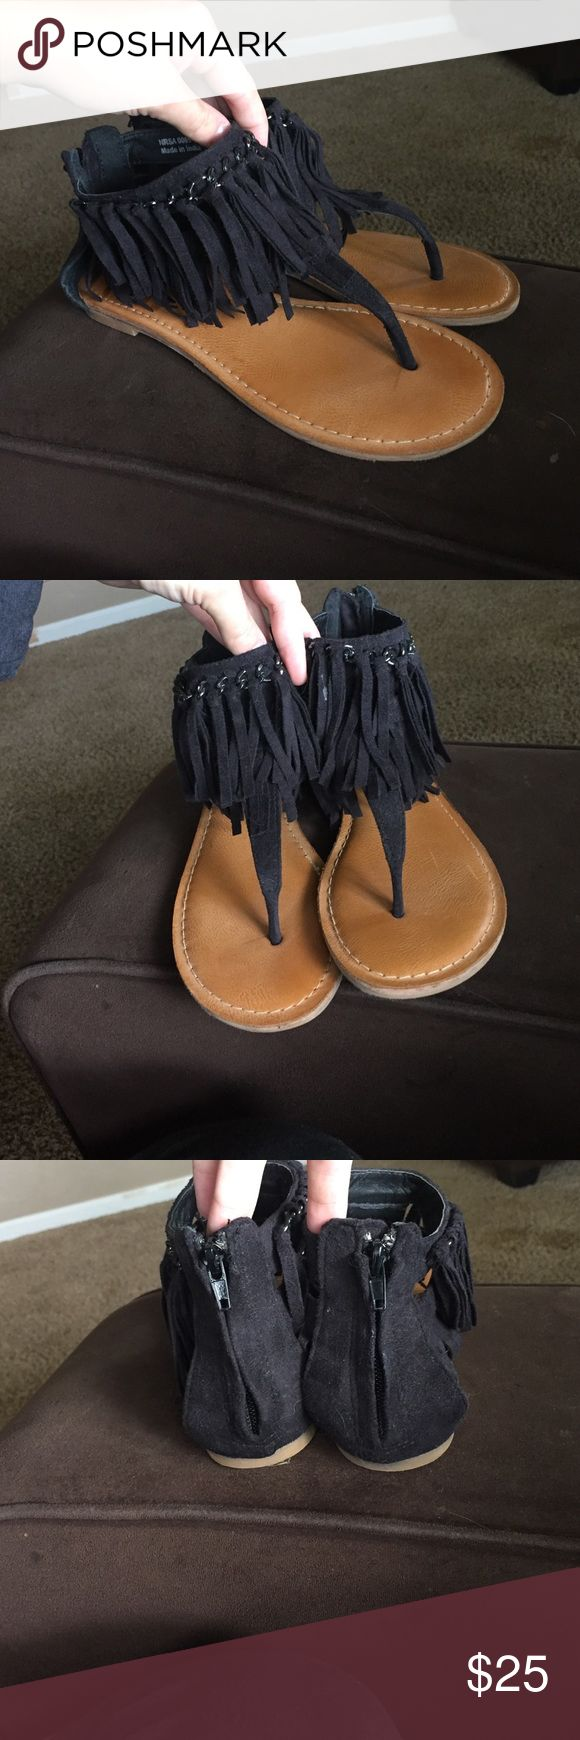 Black Fringy Not Rated Sandals! Black fringy sandals. Got from Buckle this year. Only worn 2 times. The brand is Not Rated. Really comfortable. Size 7.5. Not Rated Shoes Sandals